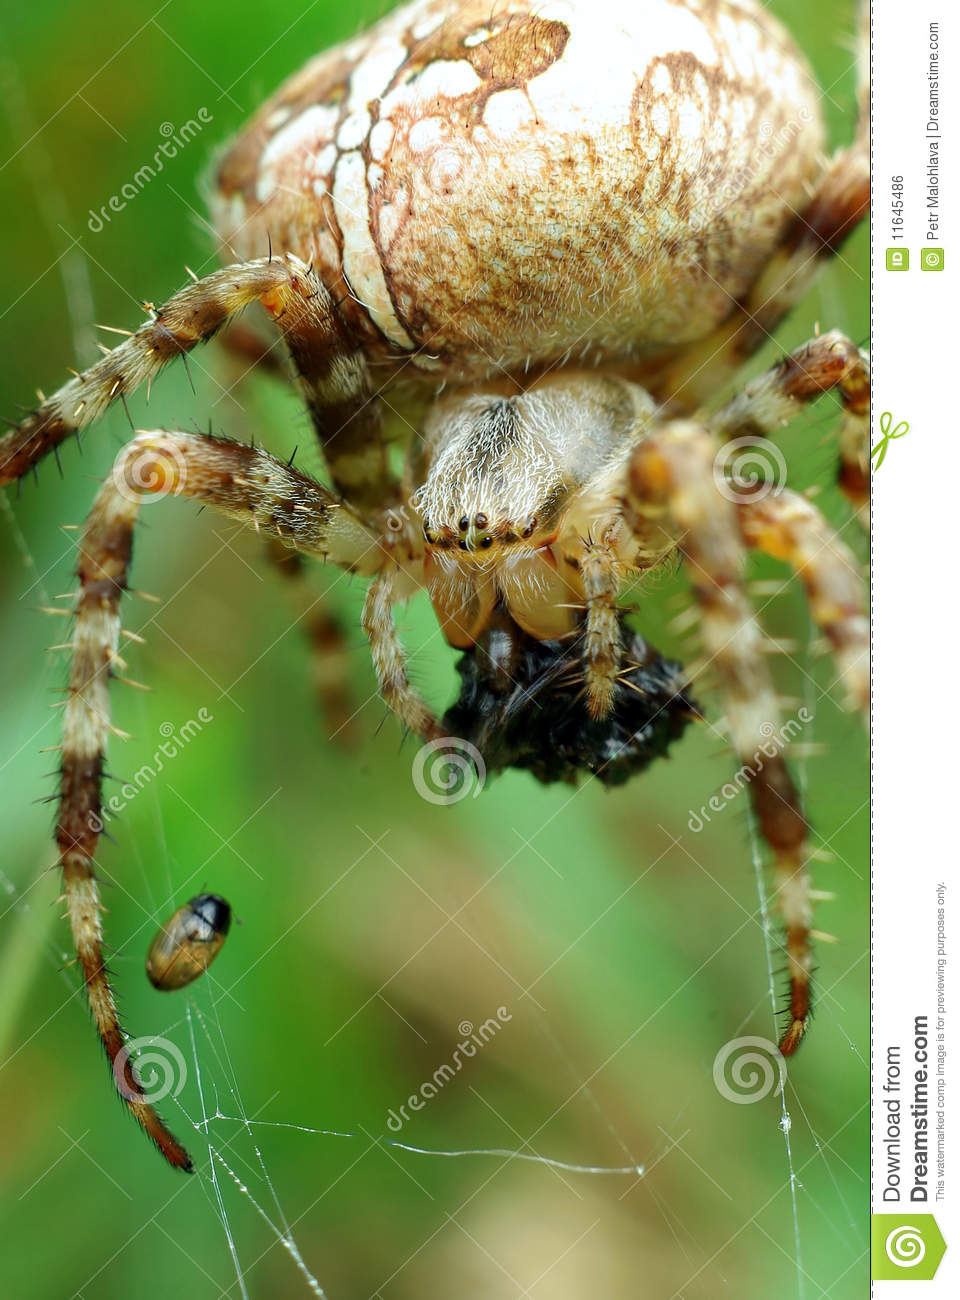 upon a spider catching a flyyyy 23:33 jeffthekillerfan i havent been on here since may 5 23:33 (´・ω・`) i was wondering where you have been, fur 23:33 stormyovercryingskies sup 23:33 jeffthekillerfan hi stormy 23:34 cupcakes8 fur, i thought you died 23:34 thebigteaparty followed your shit 23:34 uwu tumblr killed me 23:34.